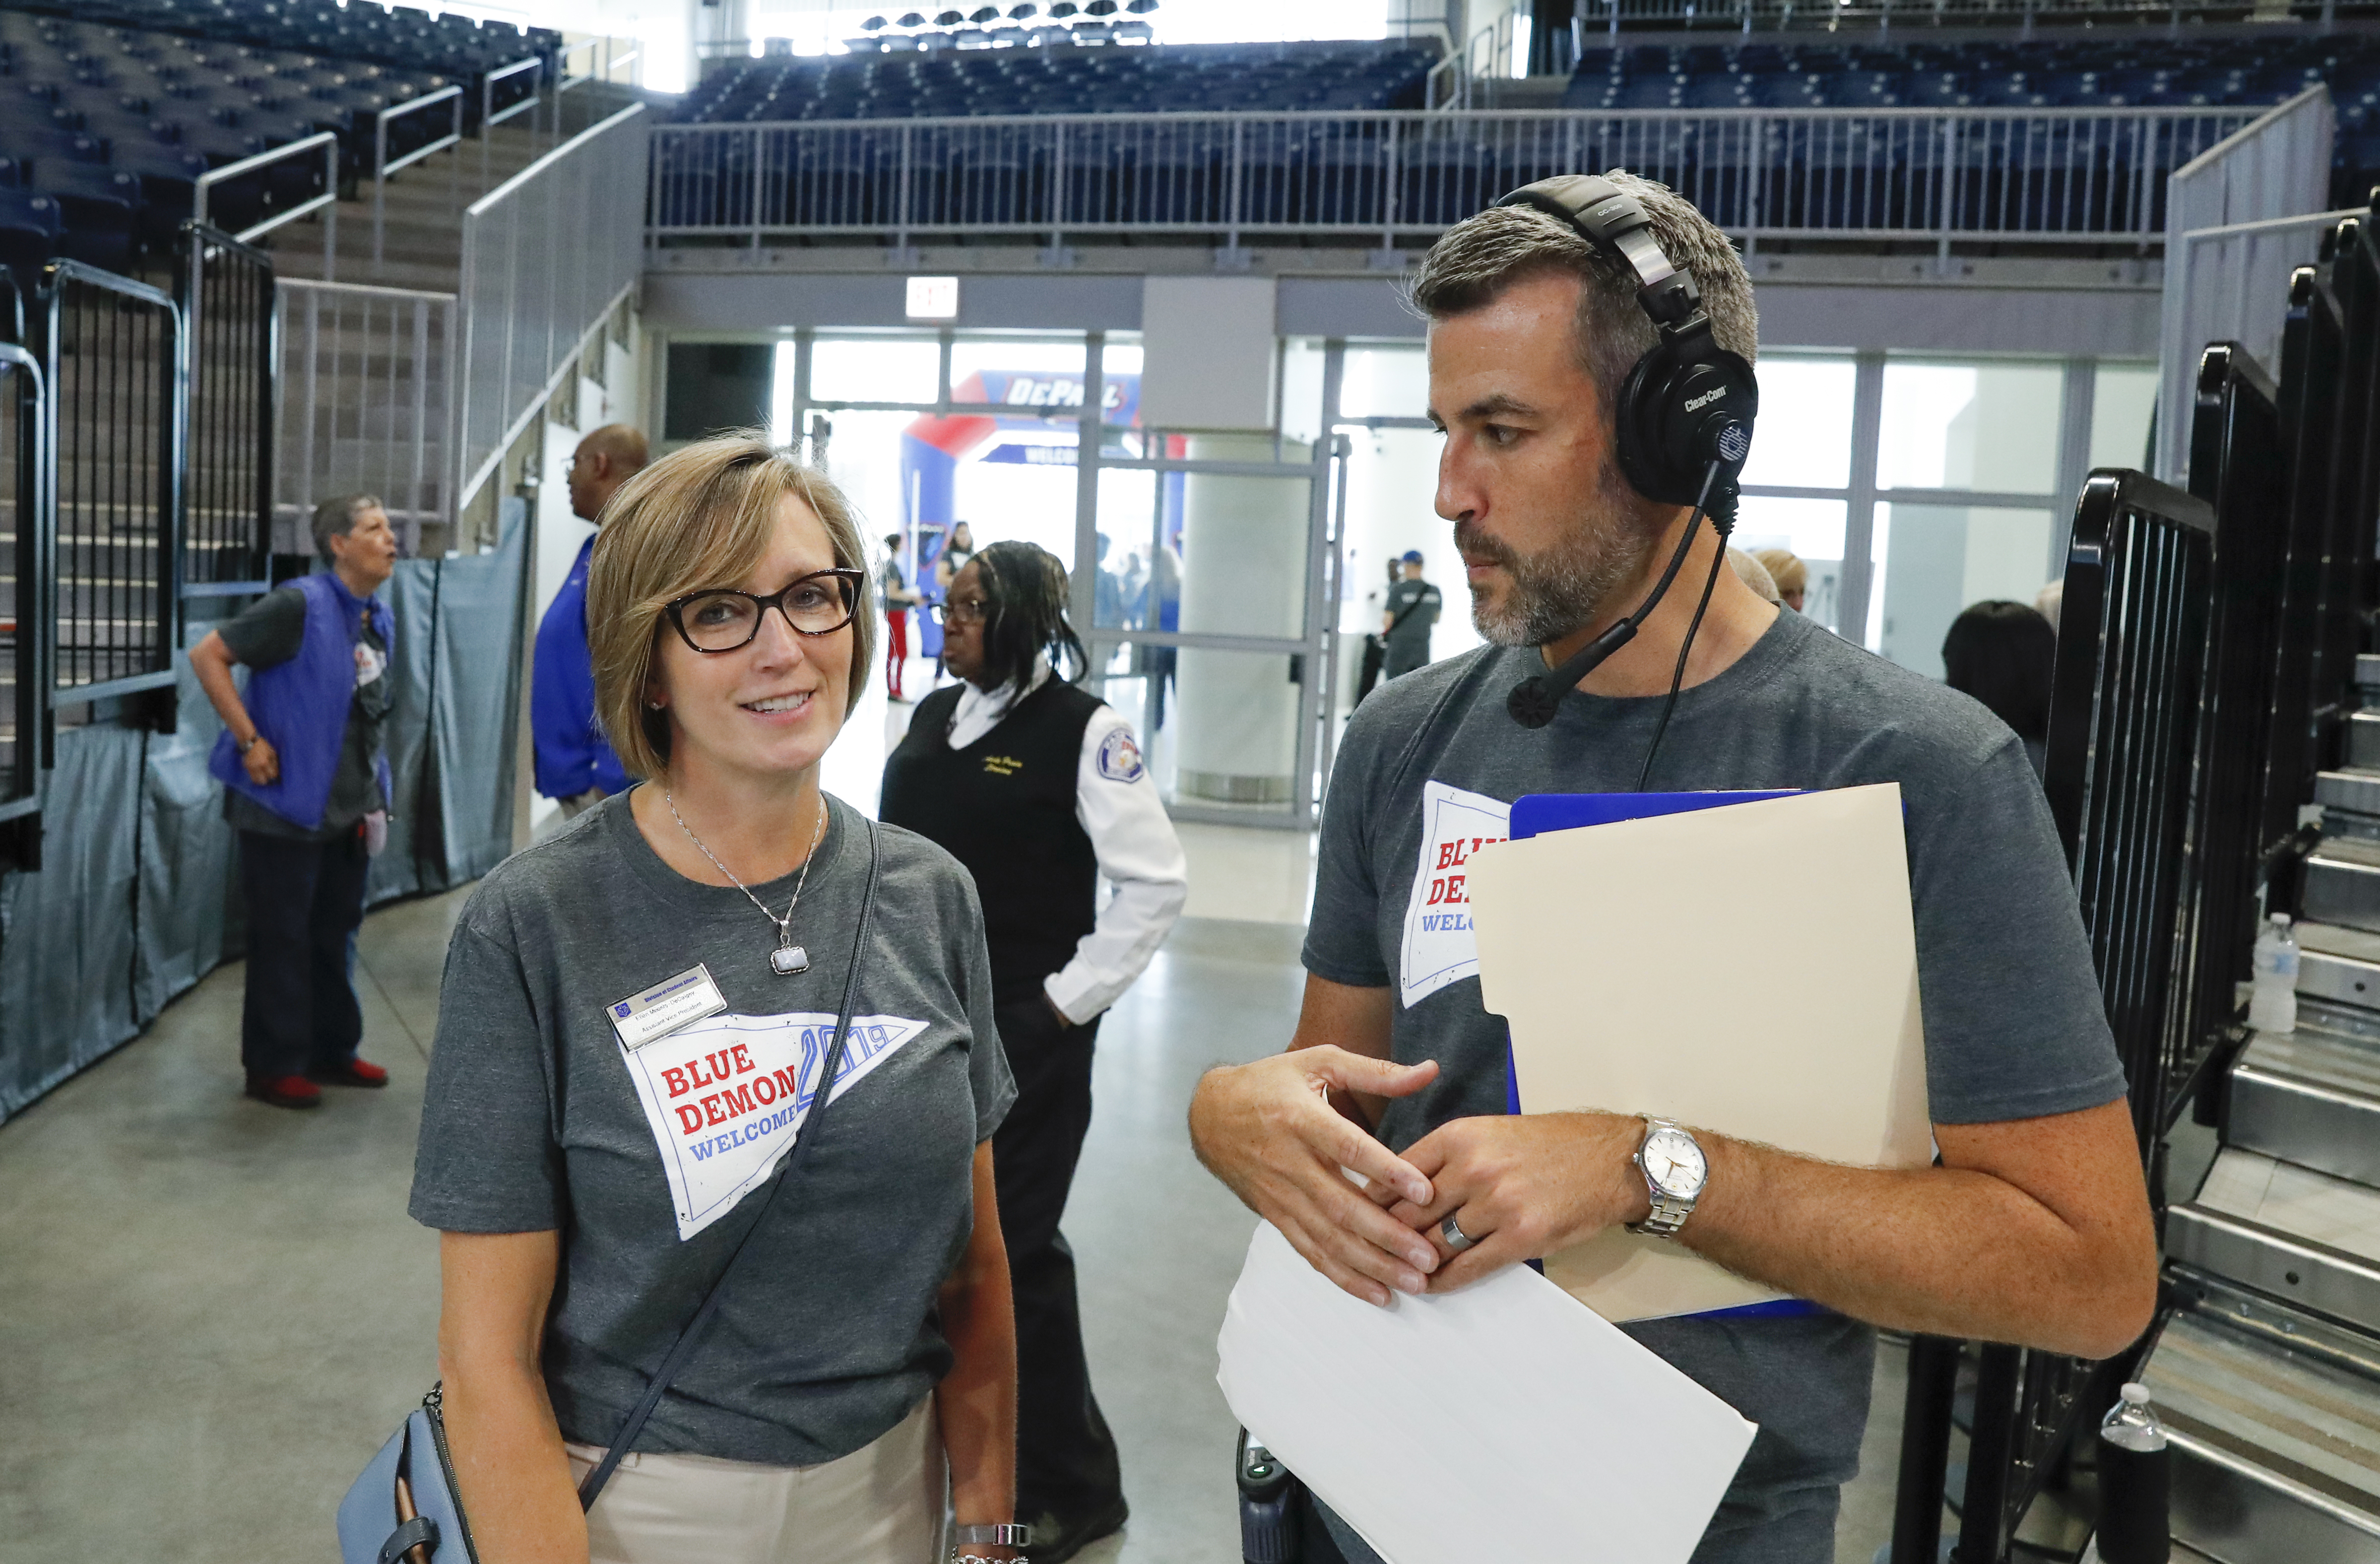 Director of New Student and Family Engagement and event organizer Tom Menchhofer (right) and Ellen Meents-DeCaigny of Student Affairs (left)